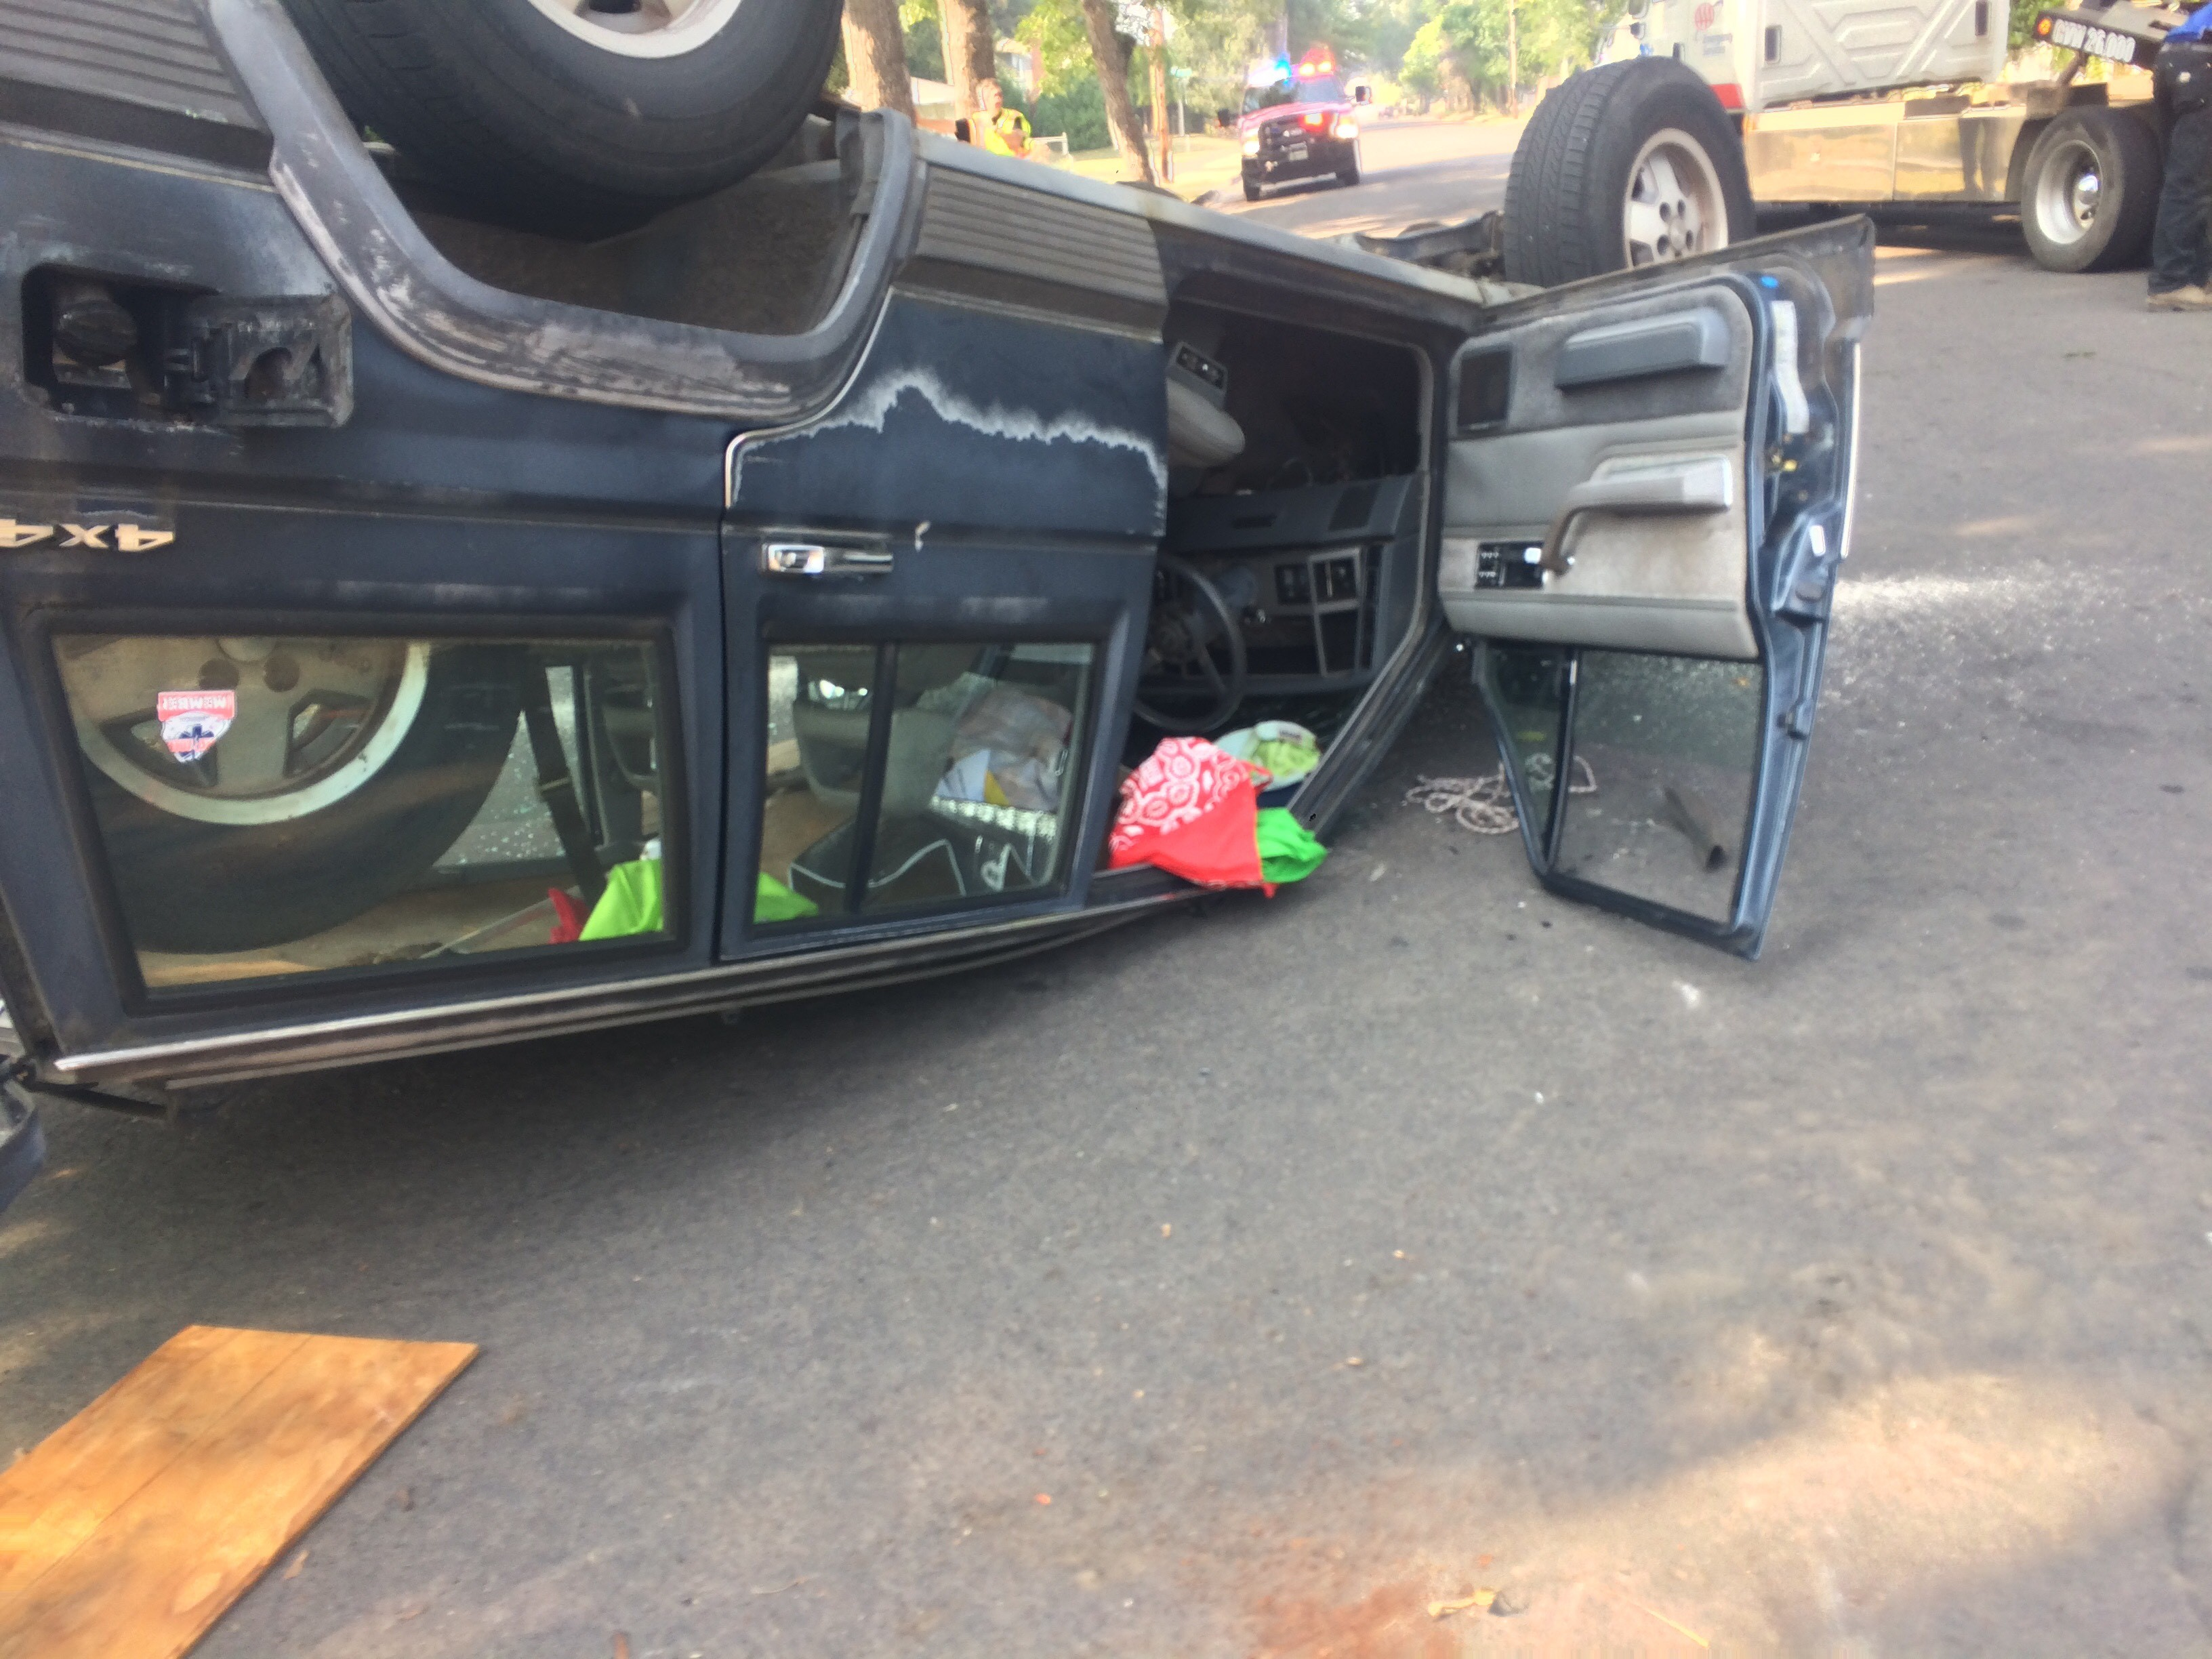 Overturned Jeep Cherokee. (SBG Photo)